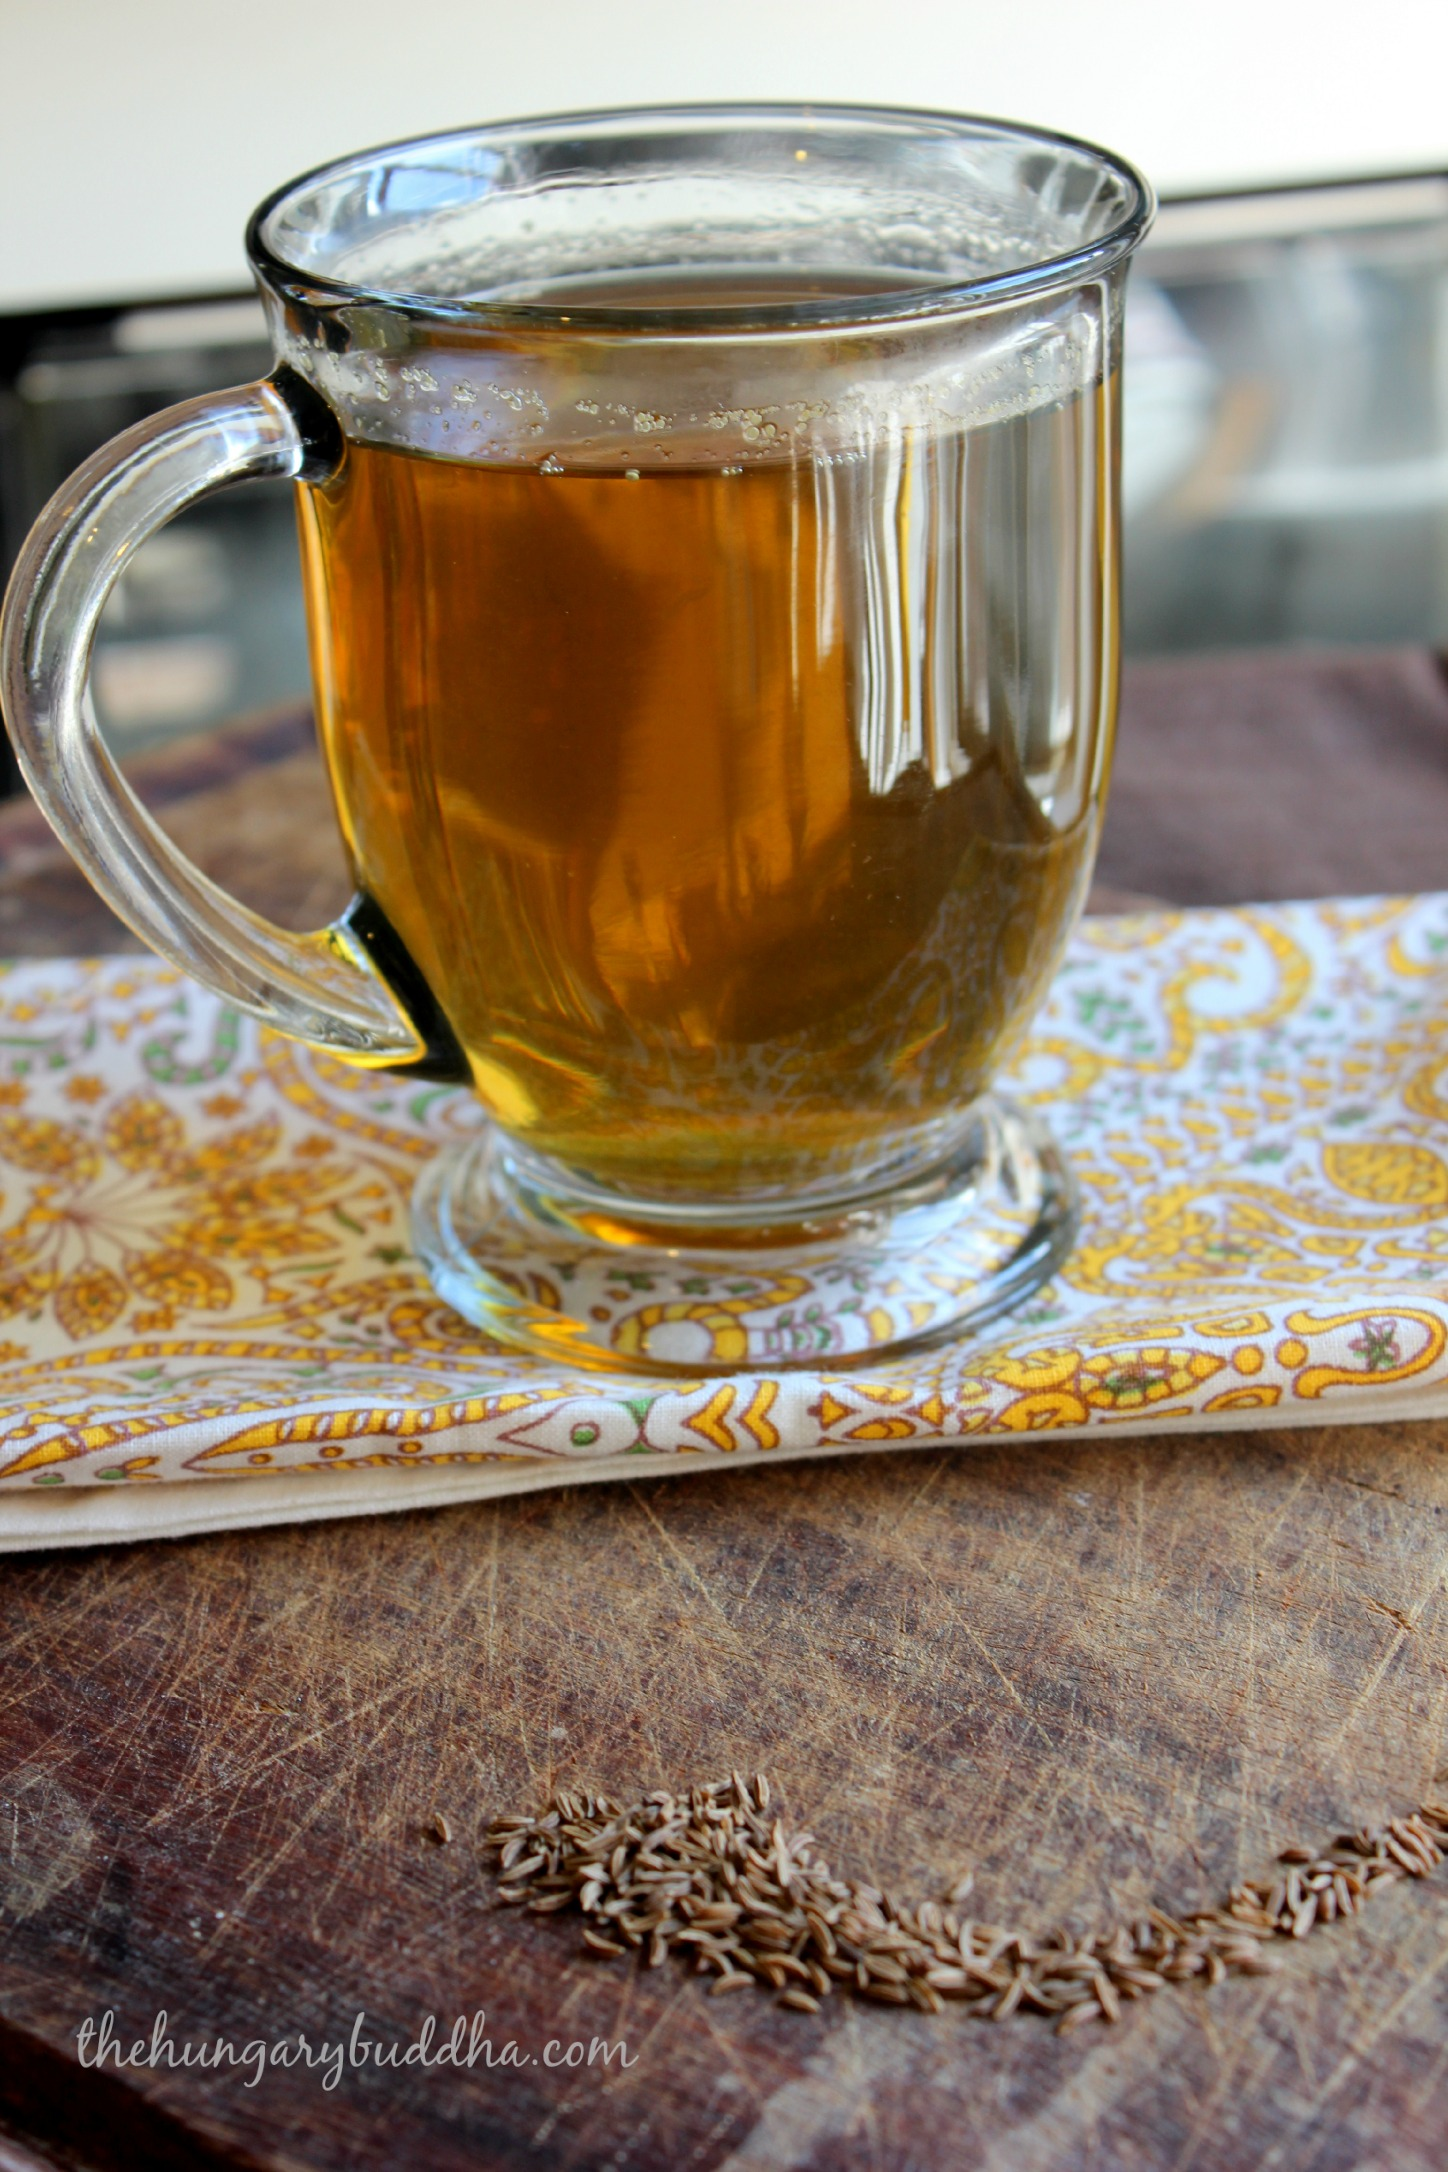 Get Carried Away: Latvian Caraway Tea